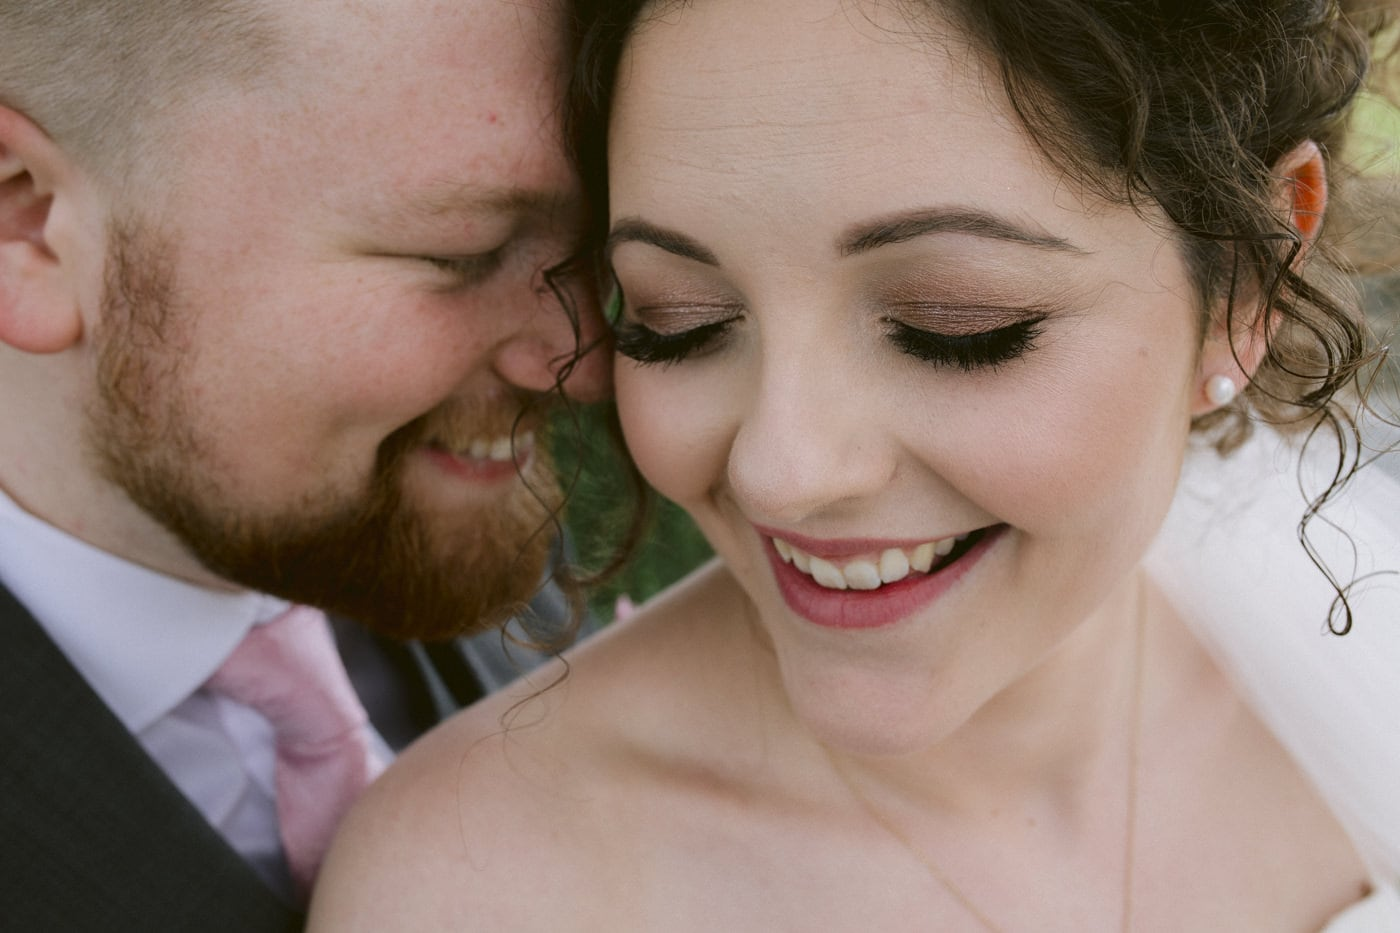 Portrait of Bride and Groom Together, Close Faces, Smiling Portrait